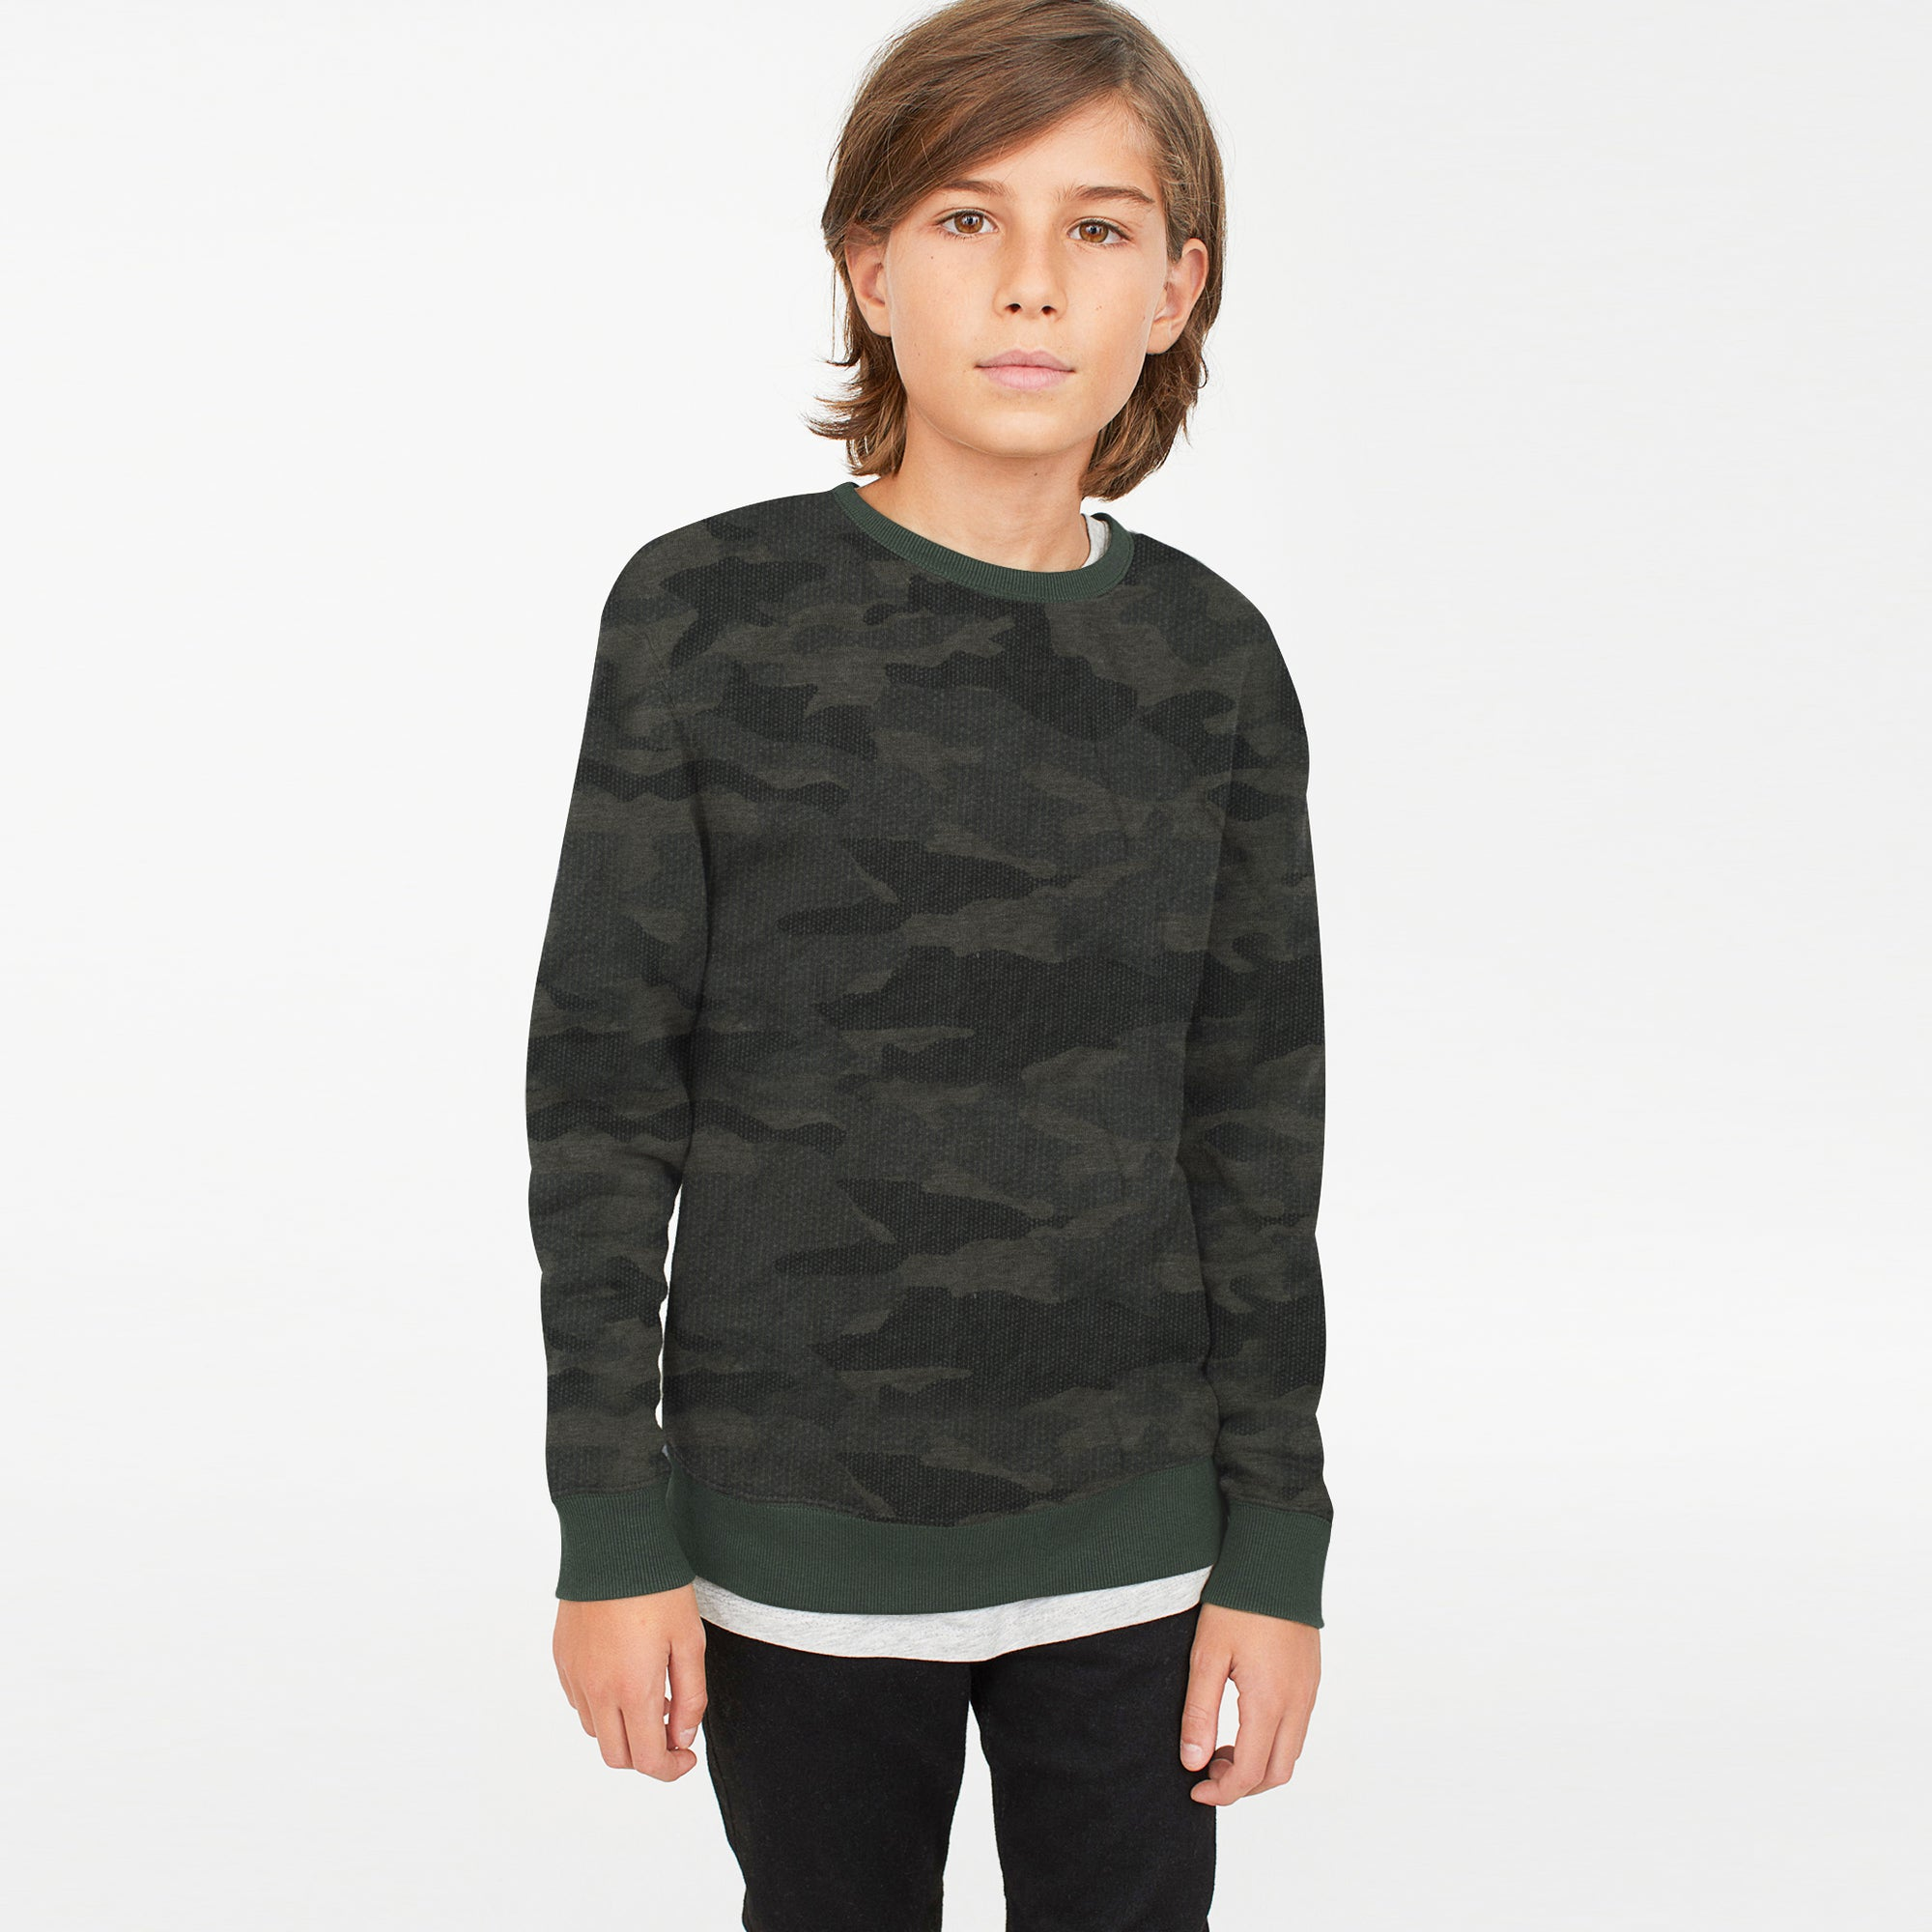 brandsego - Tommy Hilfiger Crew Neck Single Jersey Sweatshirt For Kids-Camouflage with Olive-BE7227